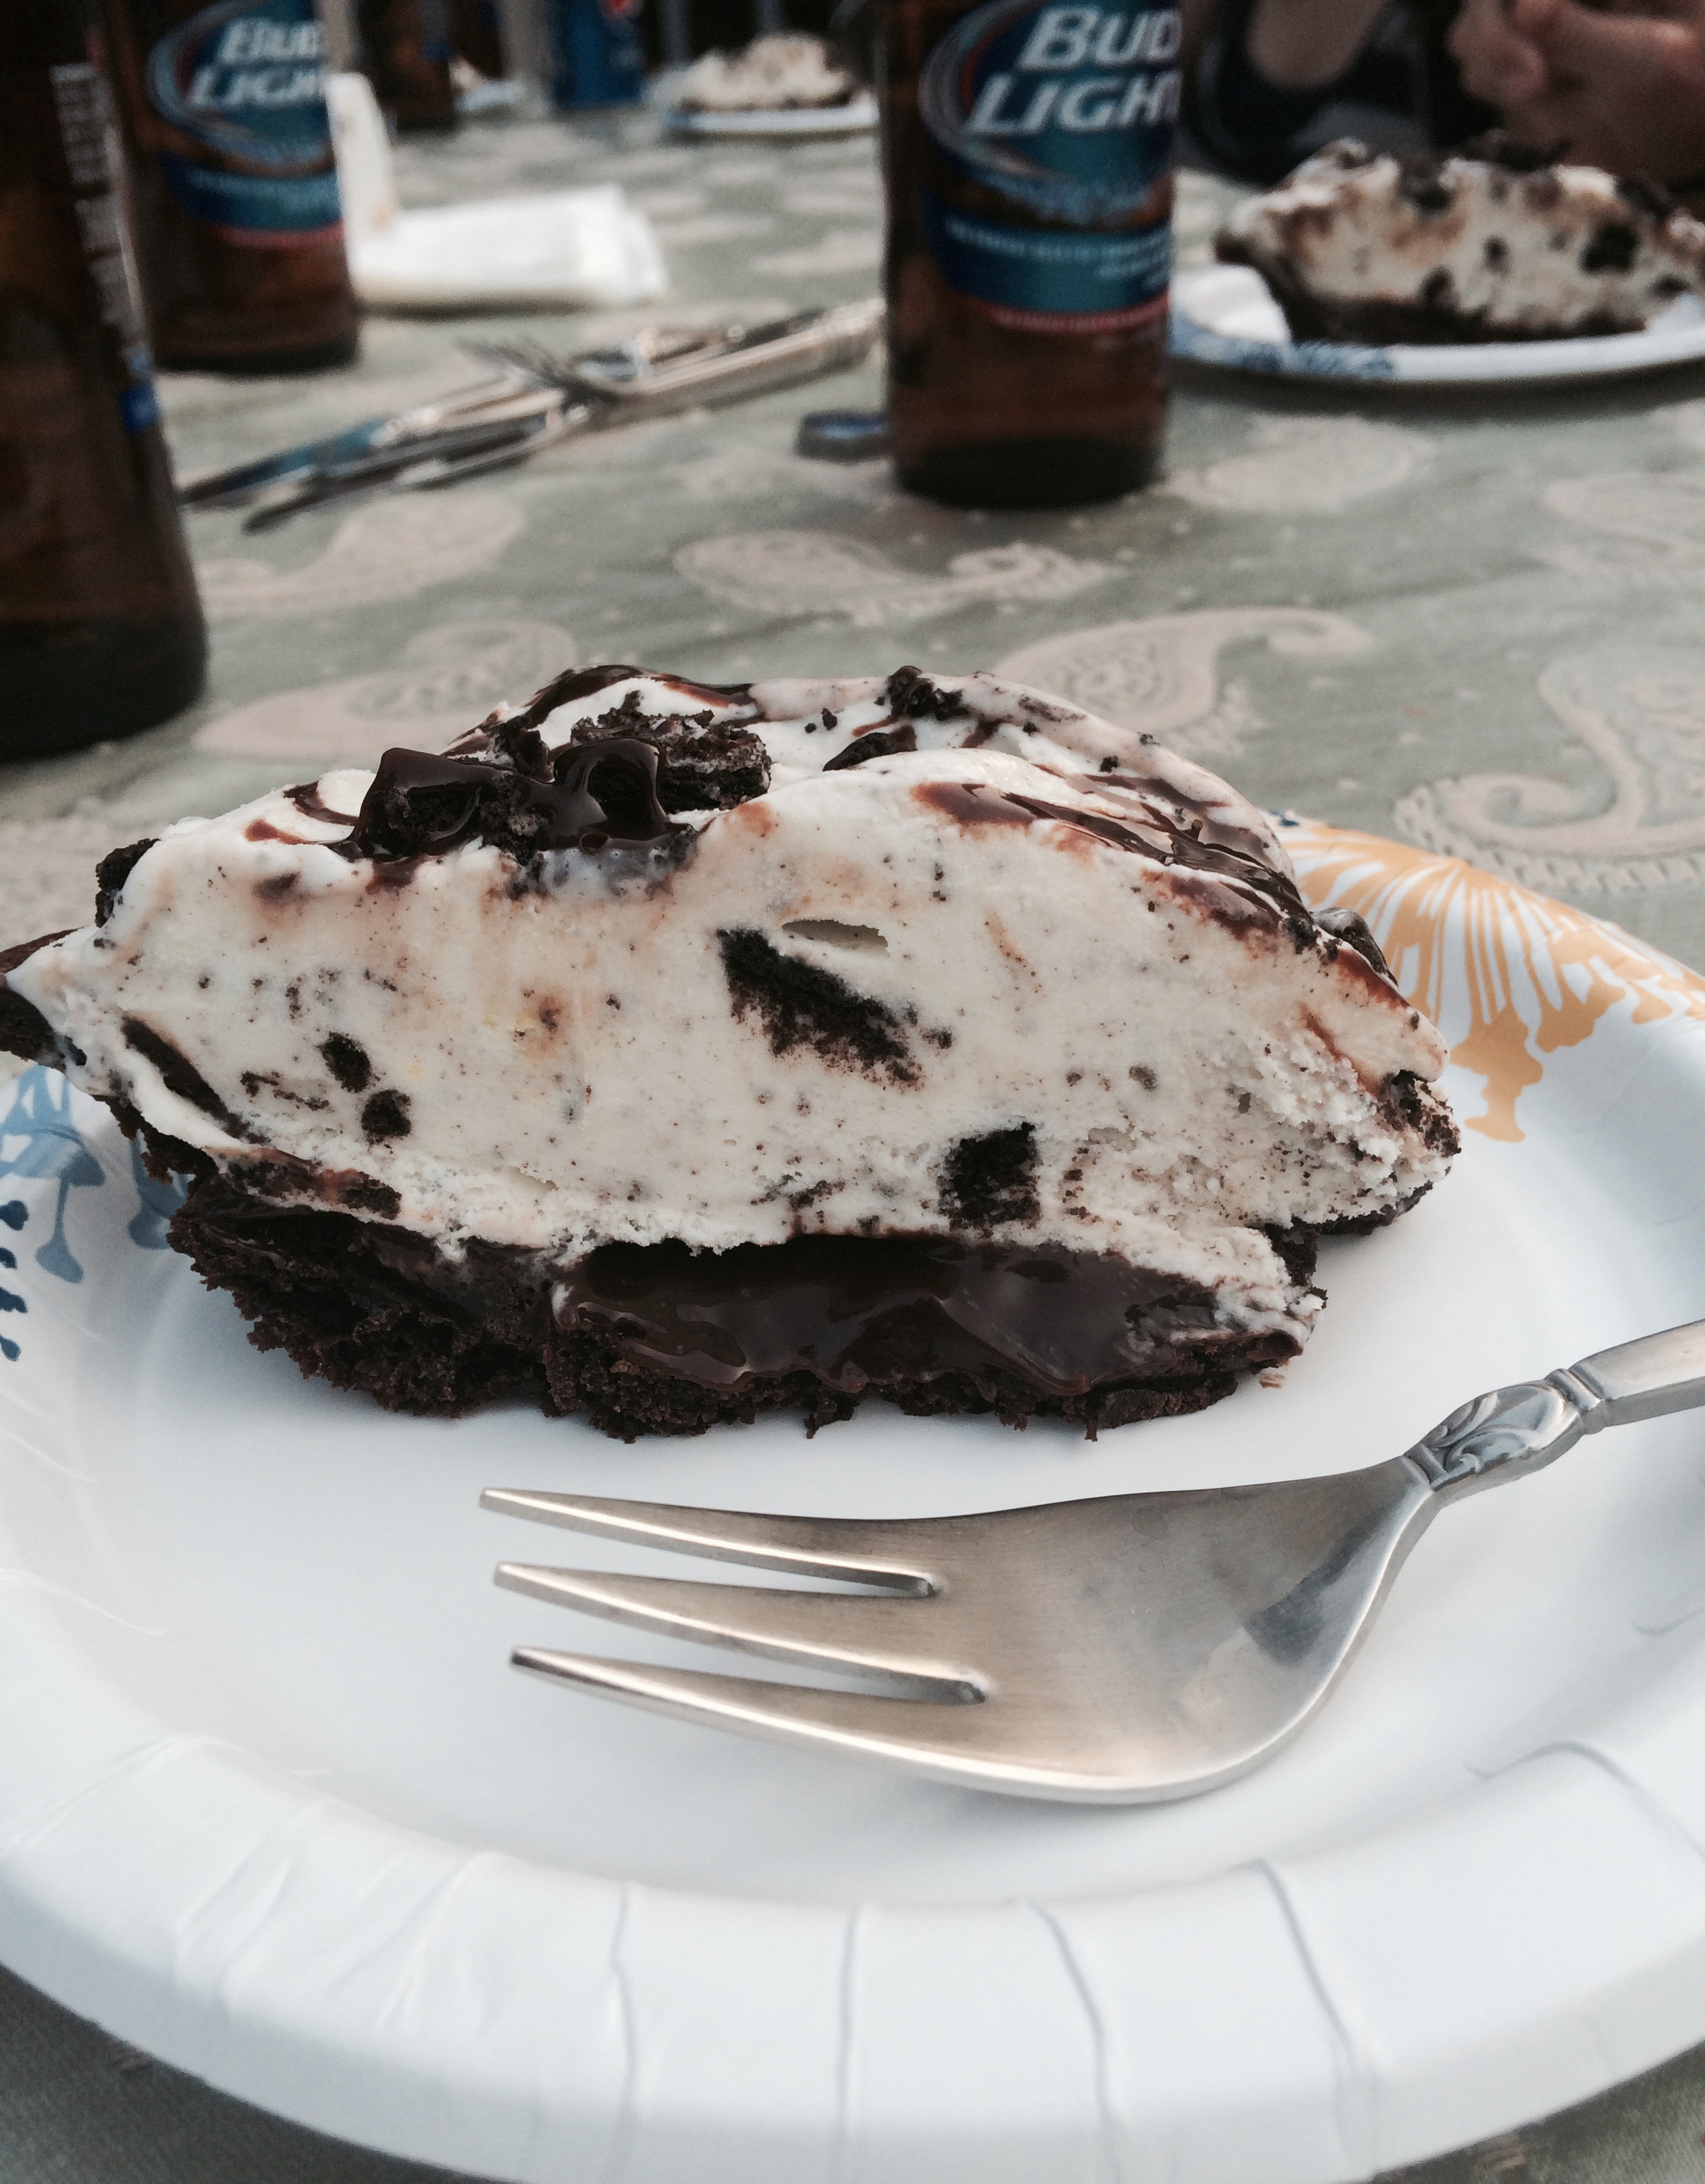 Here is a look inside the ice cream pie. So good.